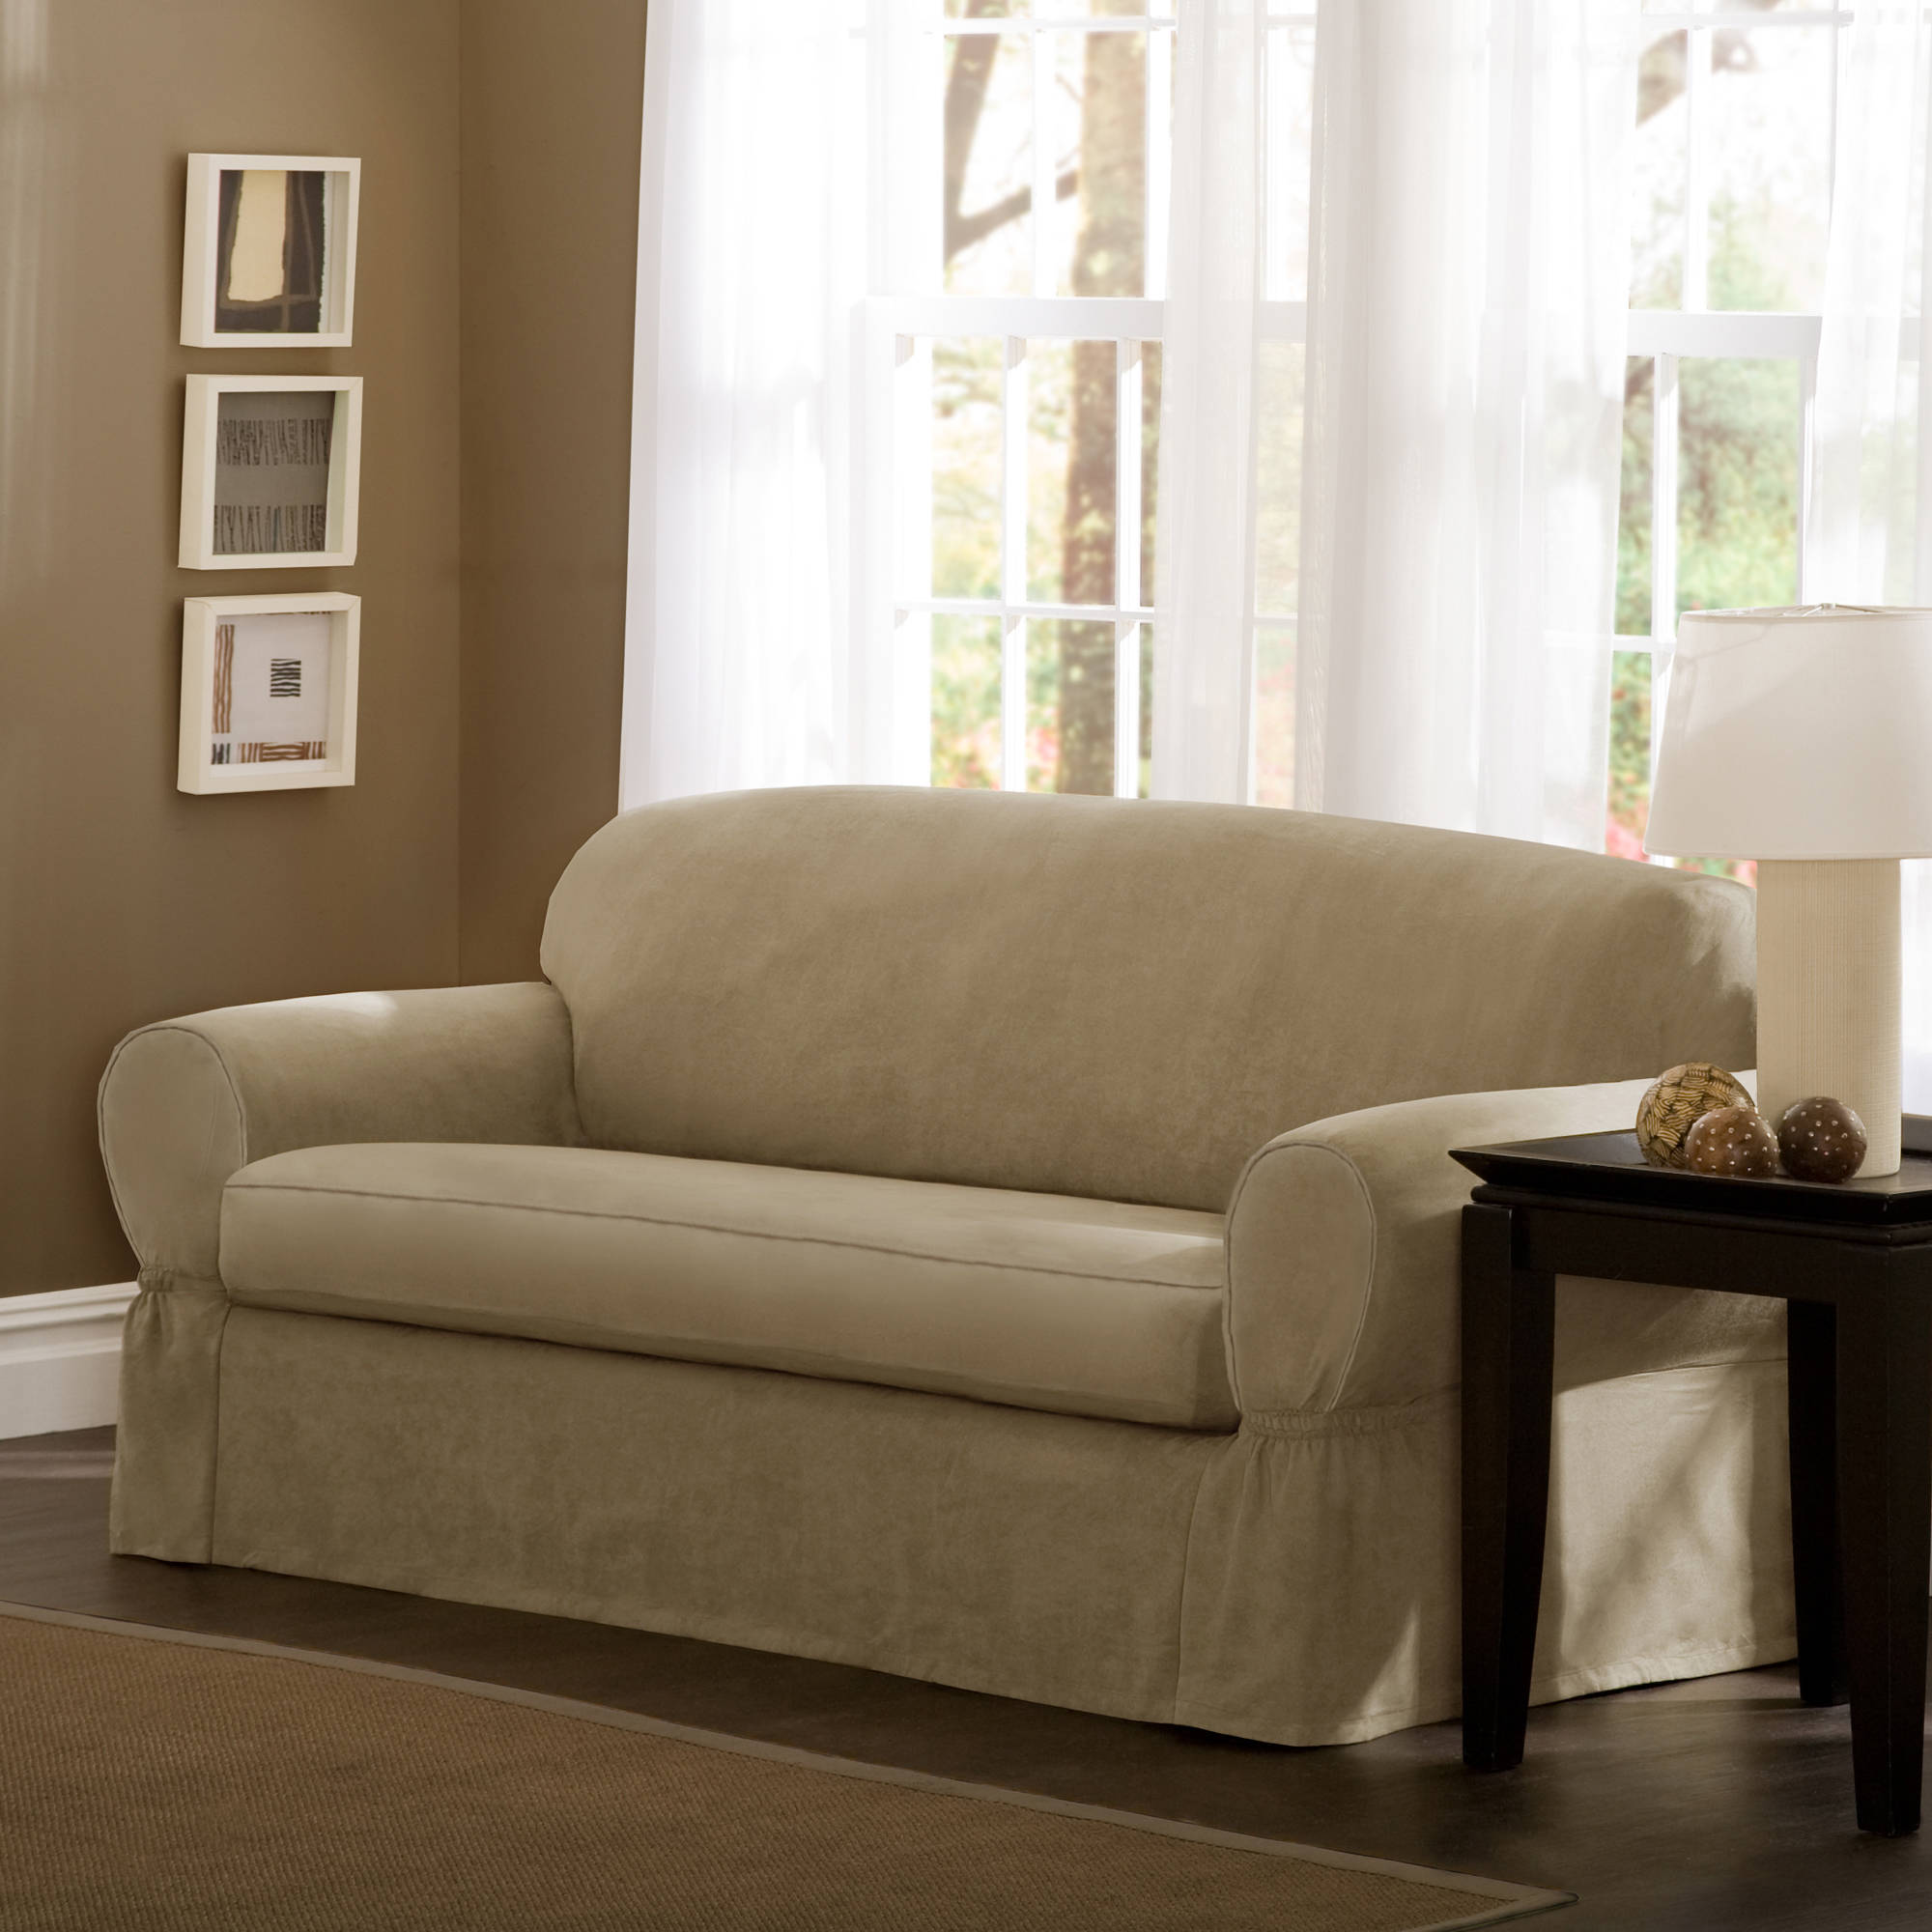 Maytex Piped Faux Suede Non-Stretch 2-Piece Loveseat Slipcover